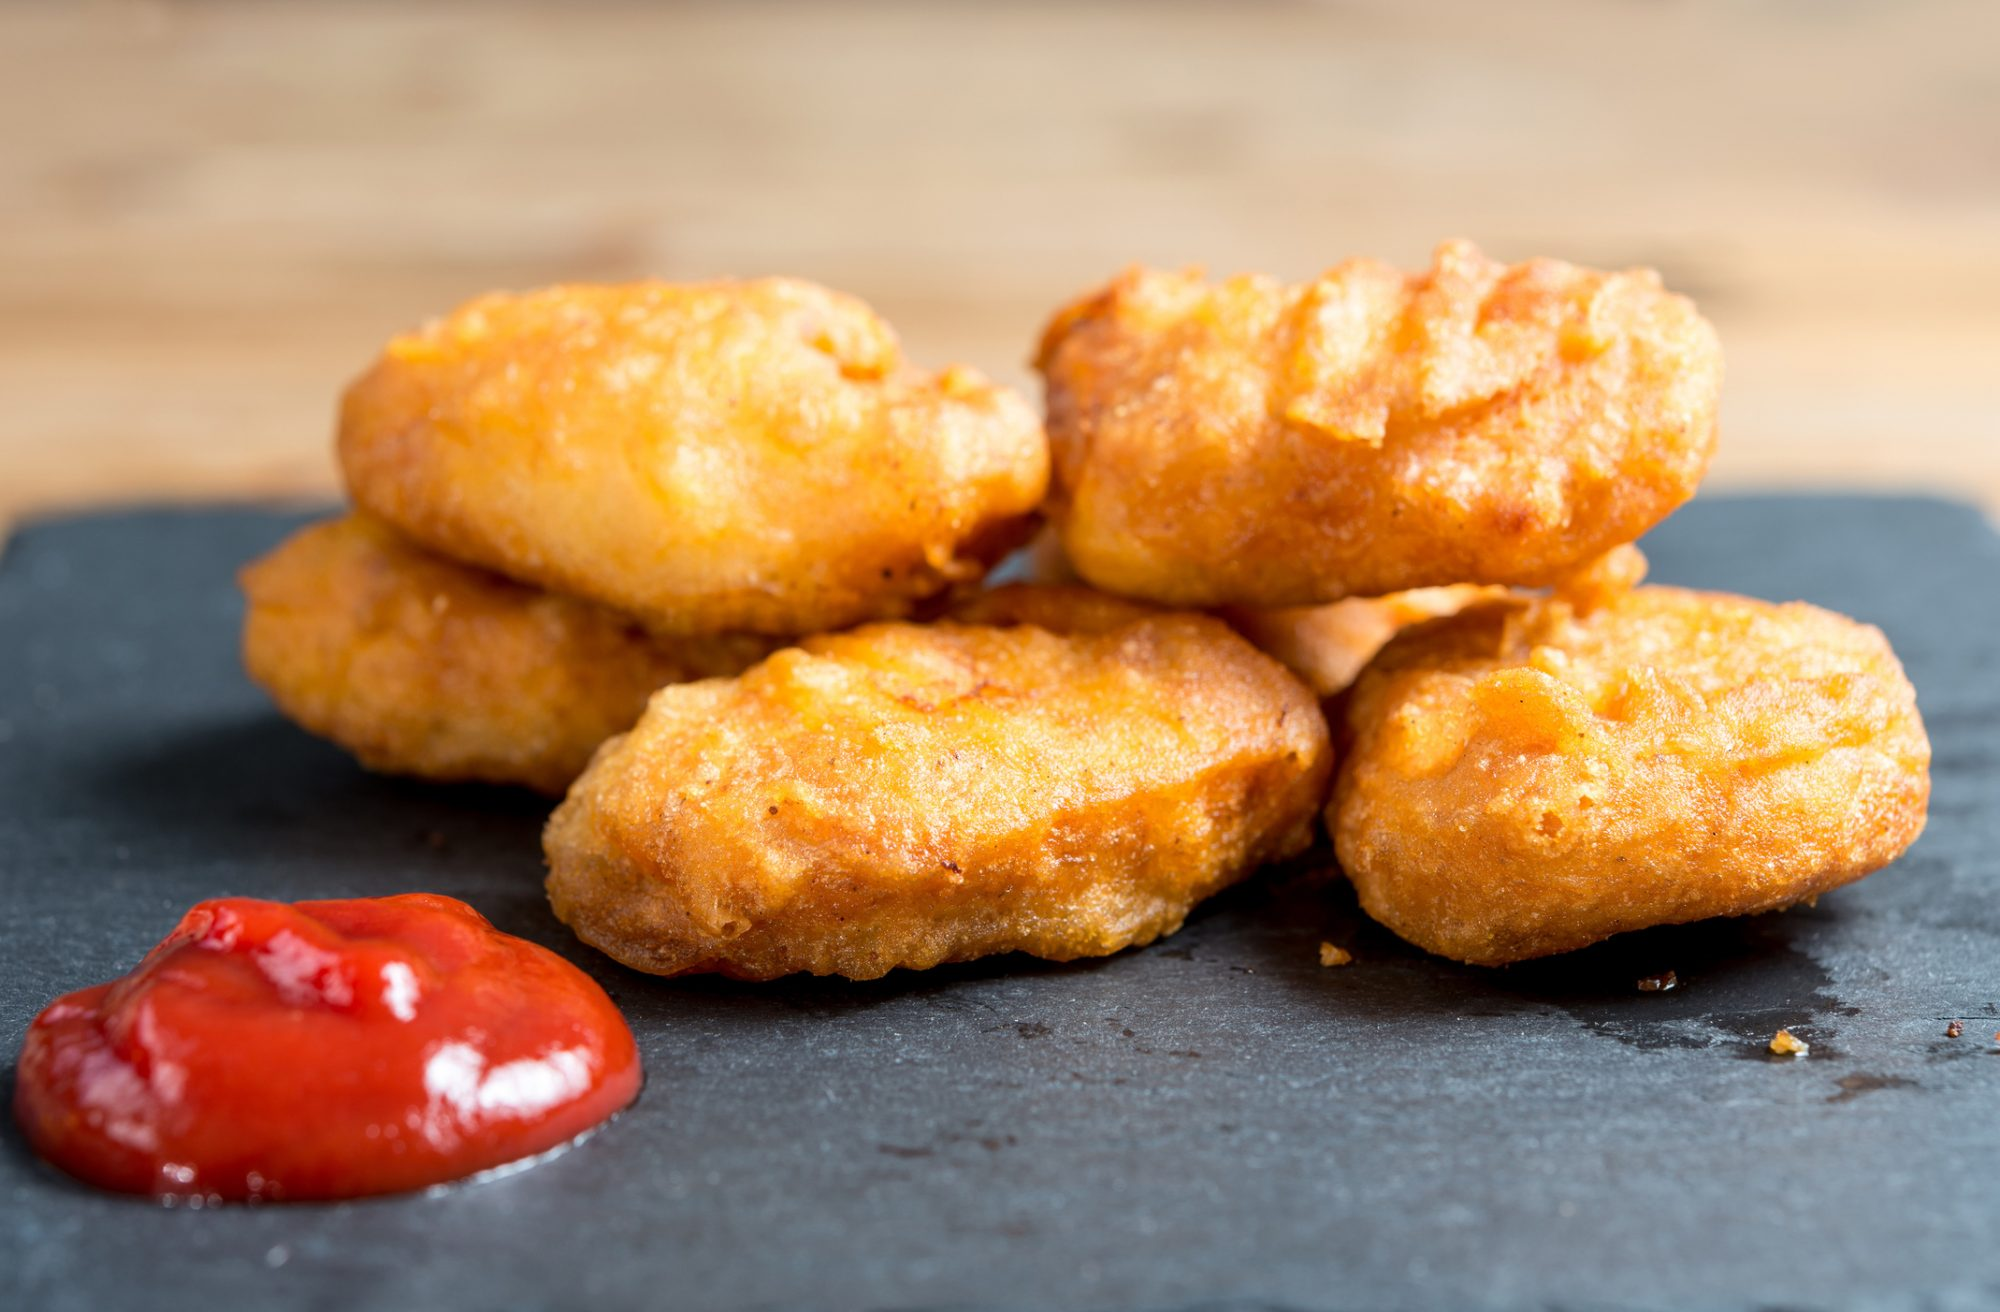 Close-Up Of Chicken Nuggets With Sauce On Granite Plate